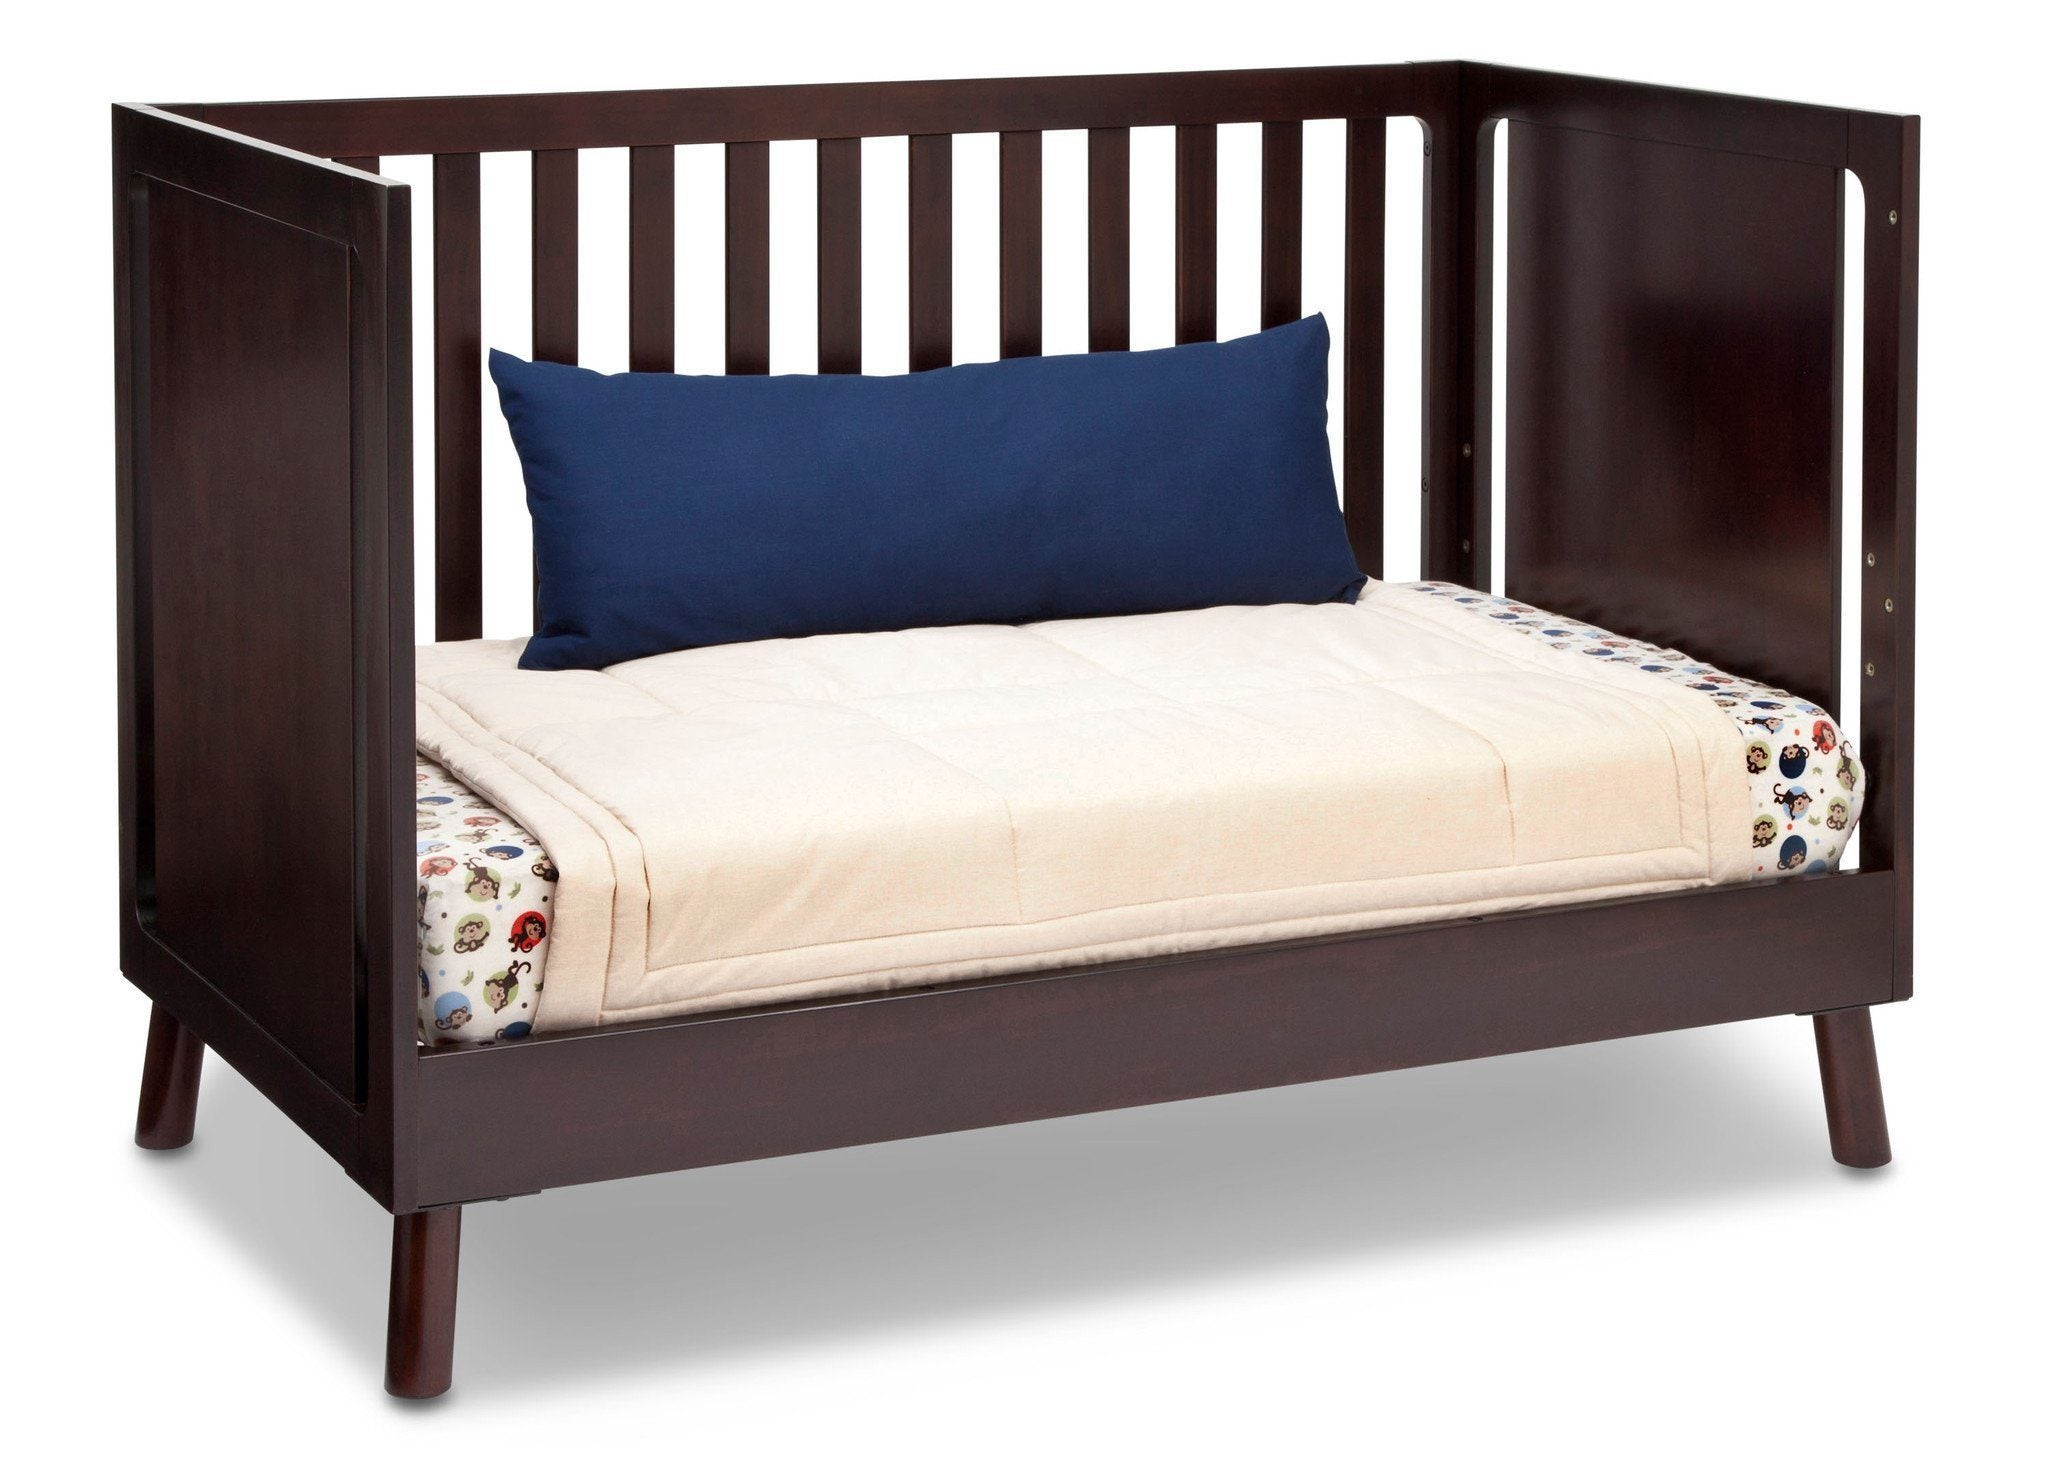 Delta Children Dark Chocolate (207) Manhattan 3-in-1 Crib, Day Bed Conversion b5b